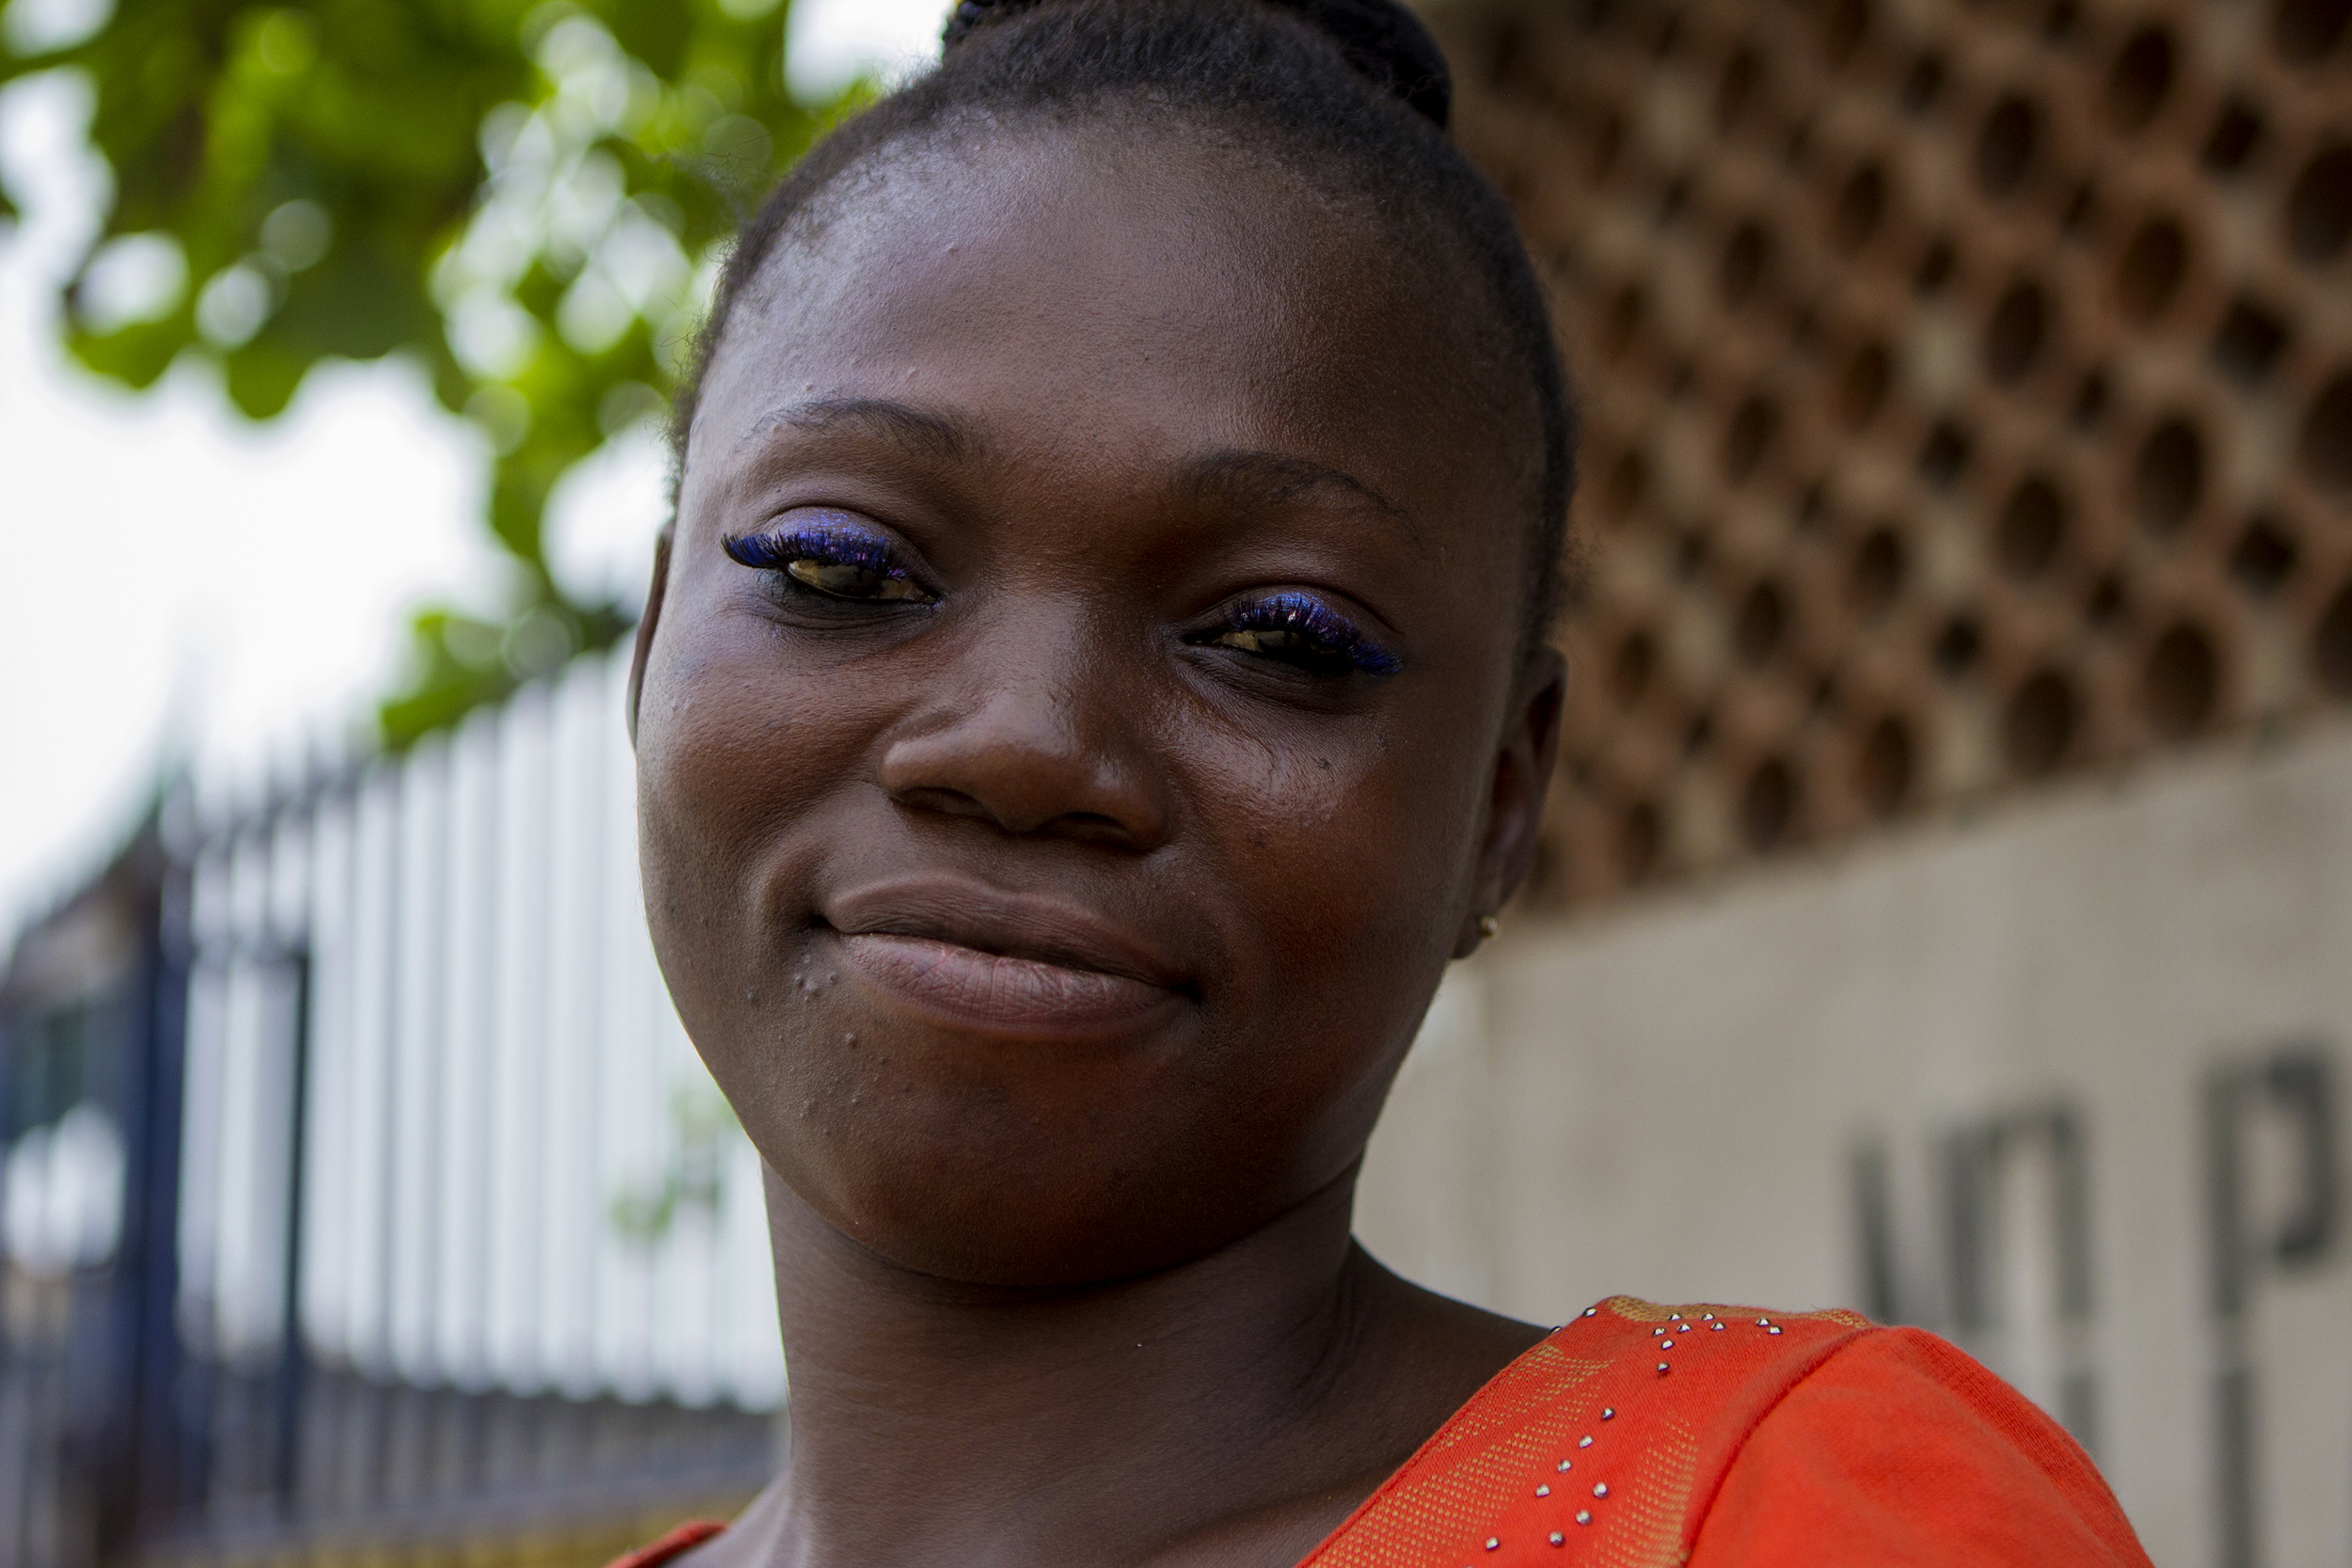 A woman poses for a photo while waiting for her bus to work in Lagos, Nigeria on Feb. 25, 2015.